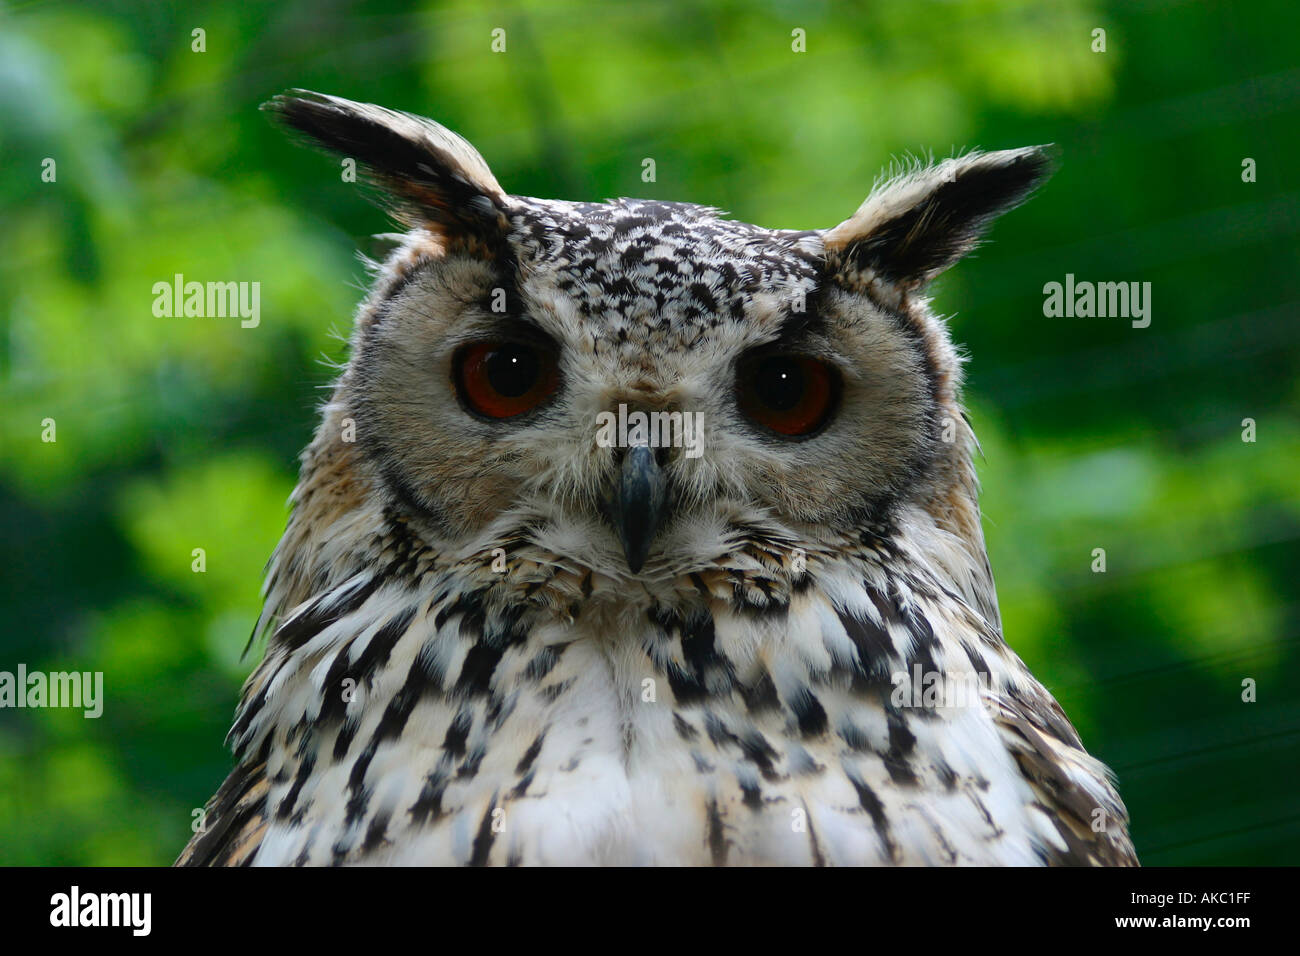 Owl staring with piercing gaze - Stock Image